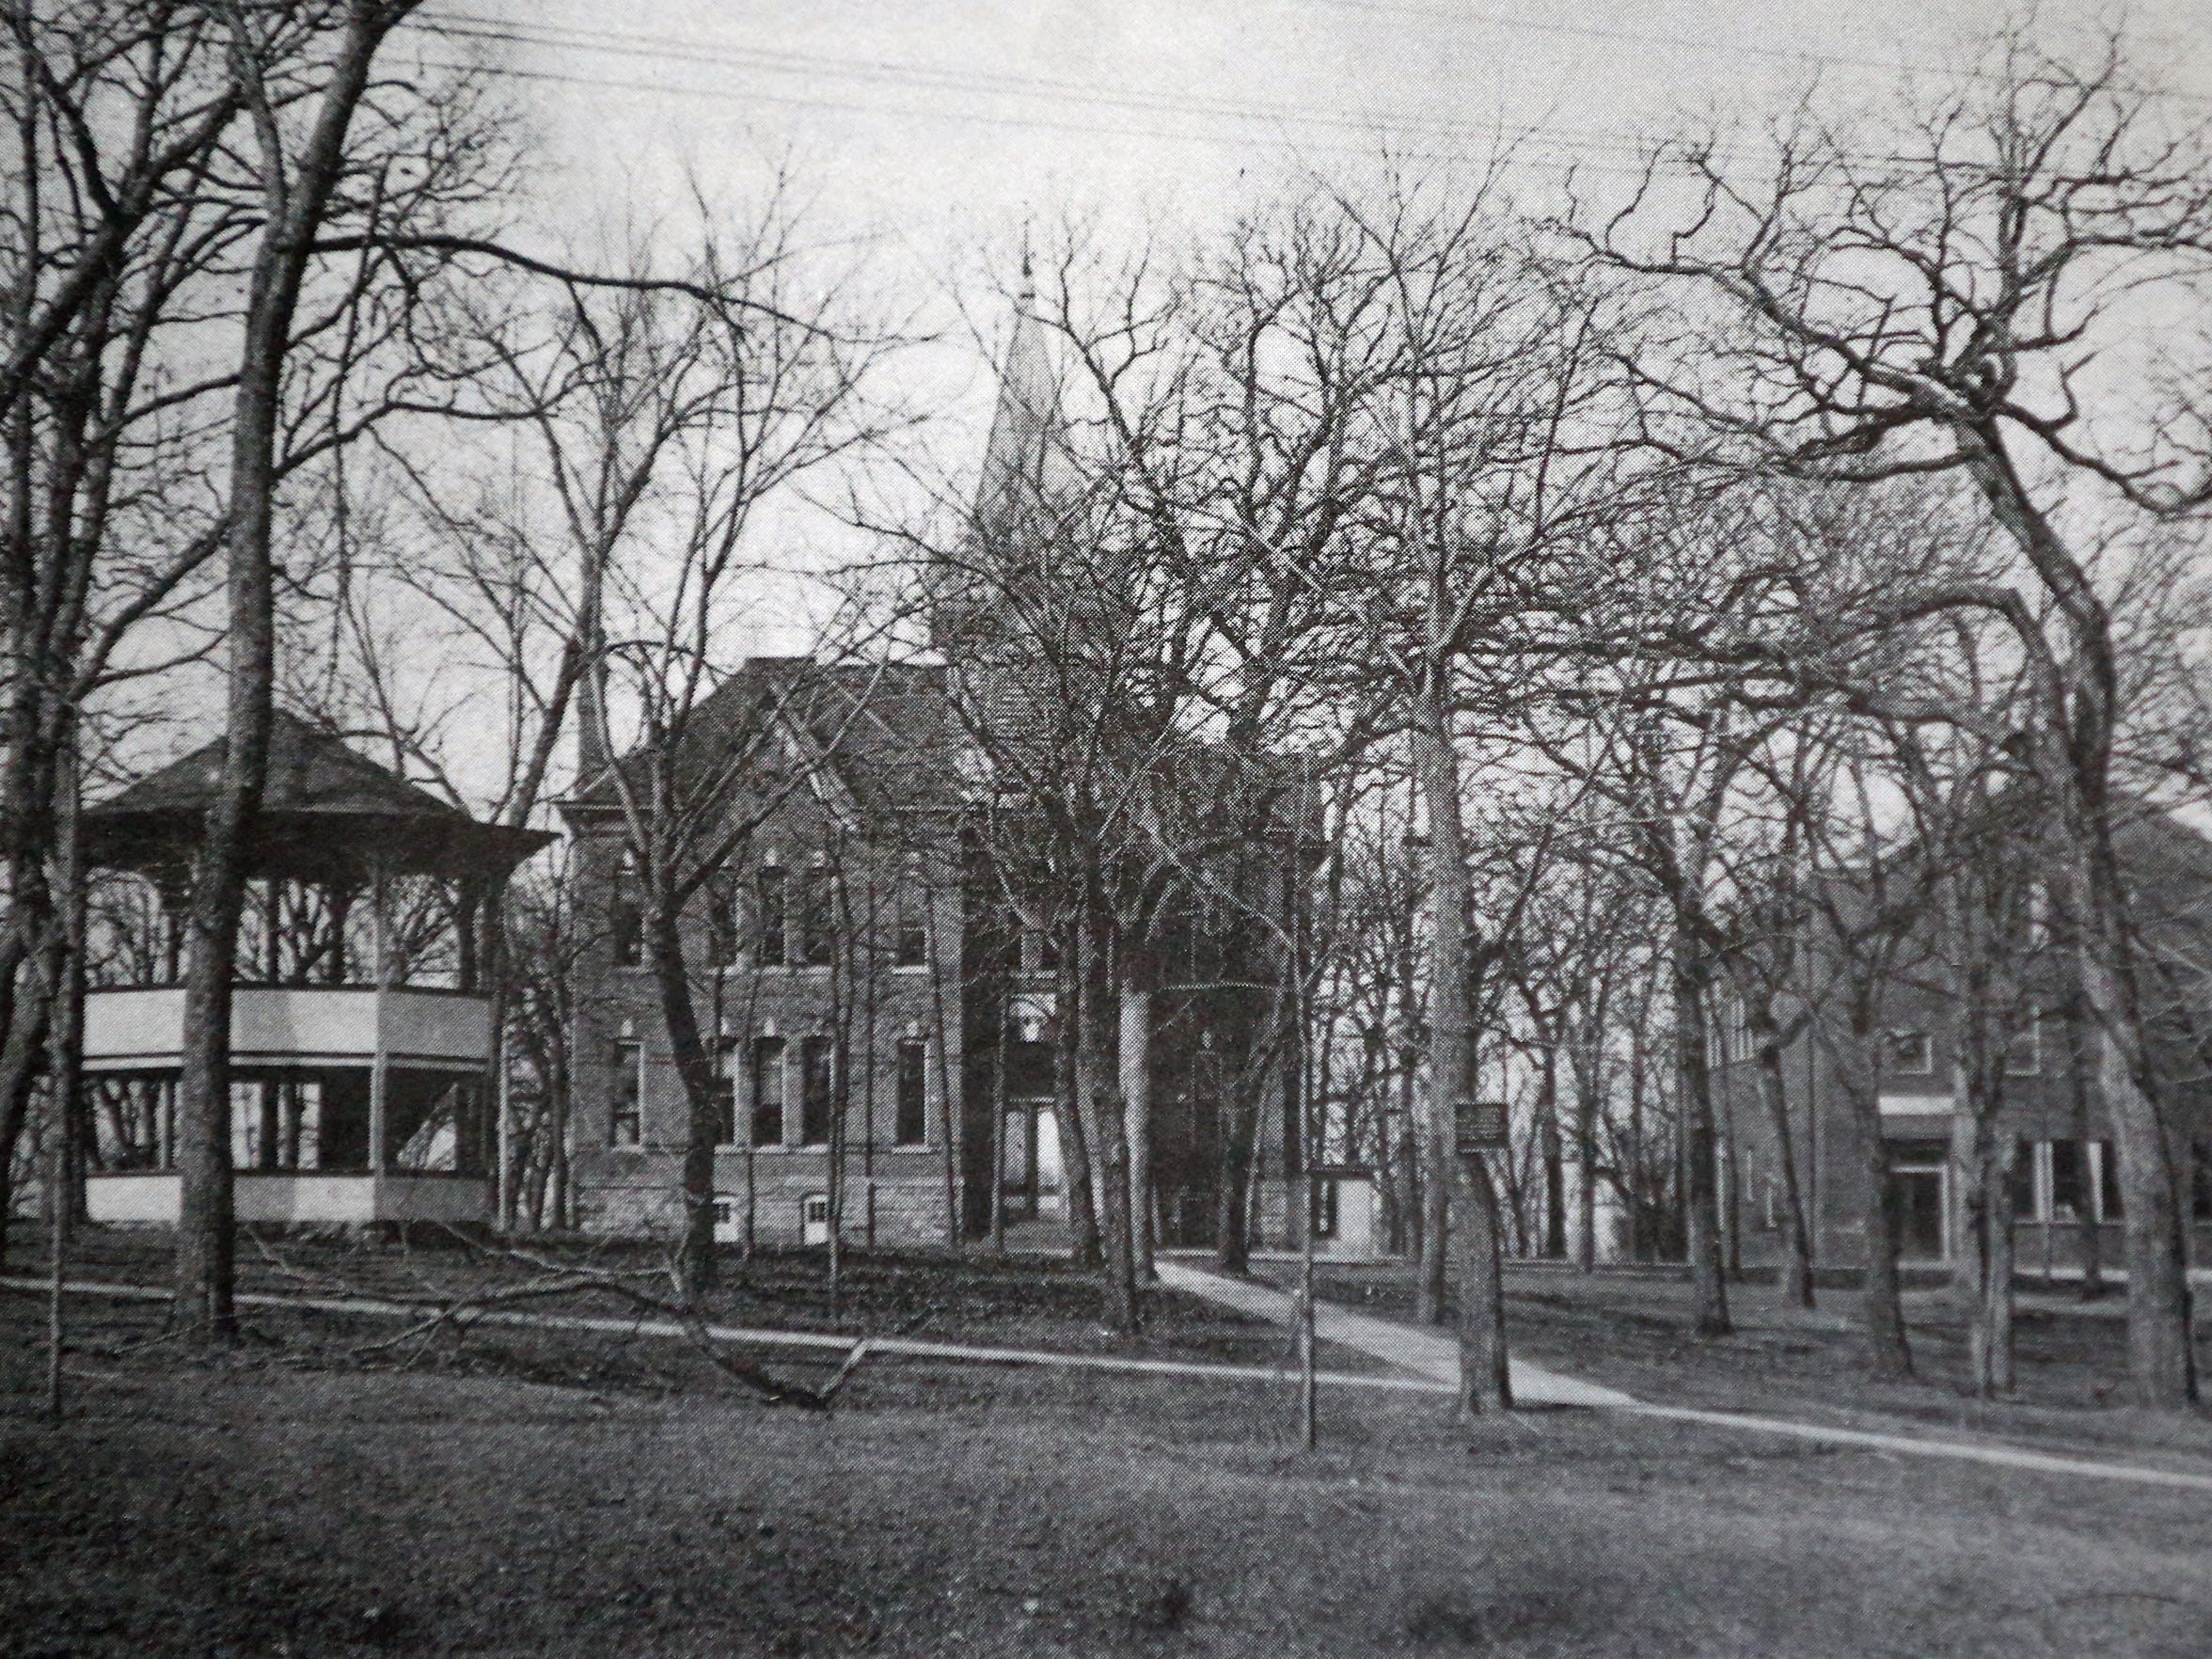 The old Springville School (center), built in 1882, demolished 1938. Shwabb Hall to the right.